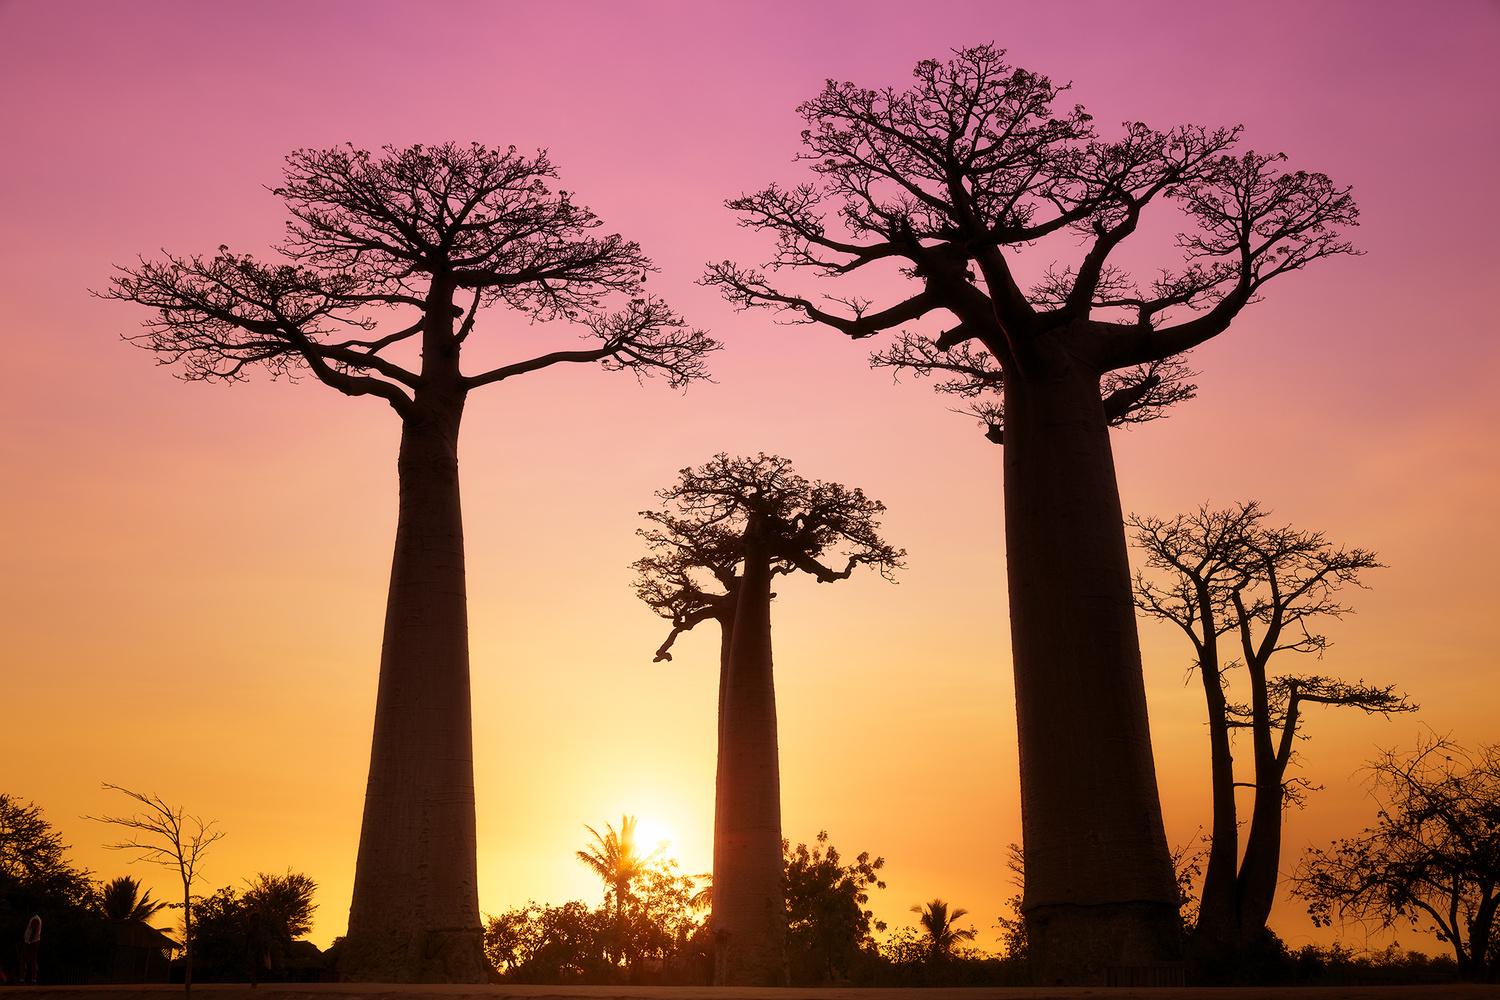 Avenue of Baobabs by Kieran Stone